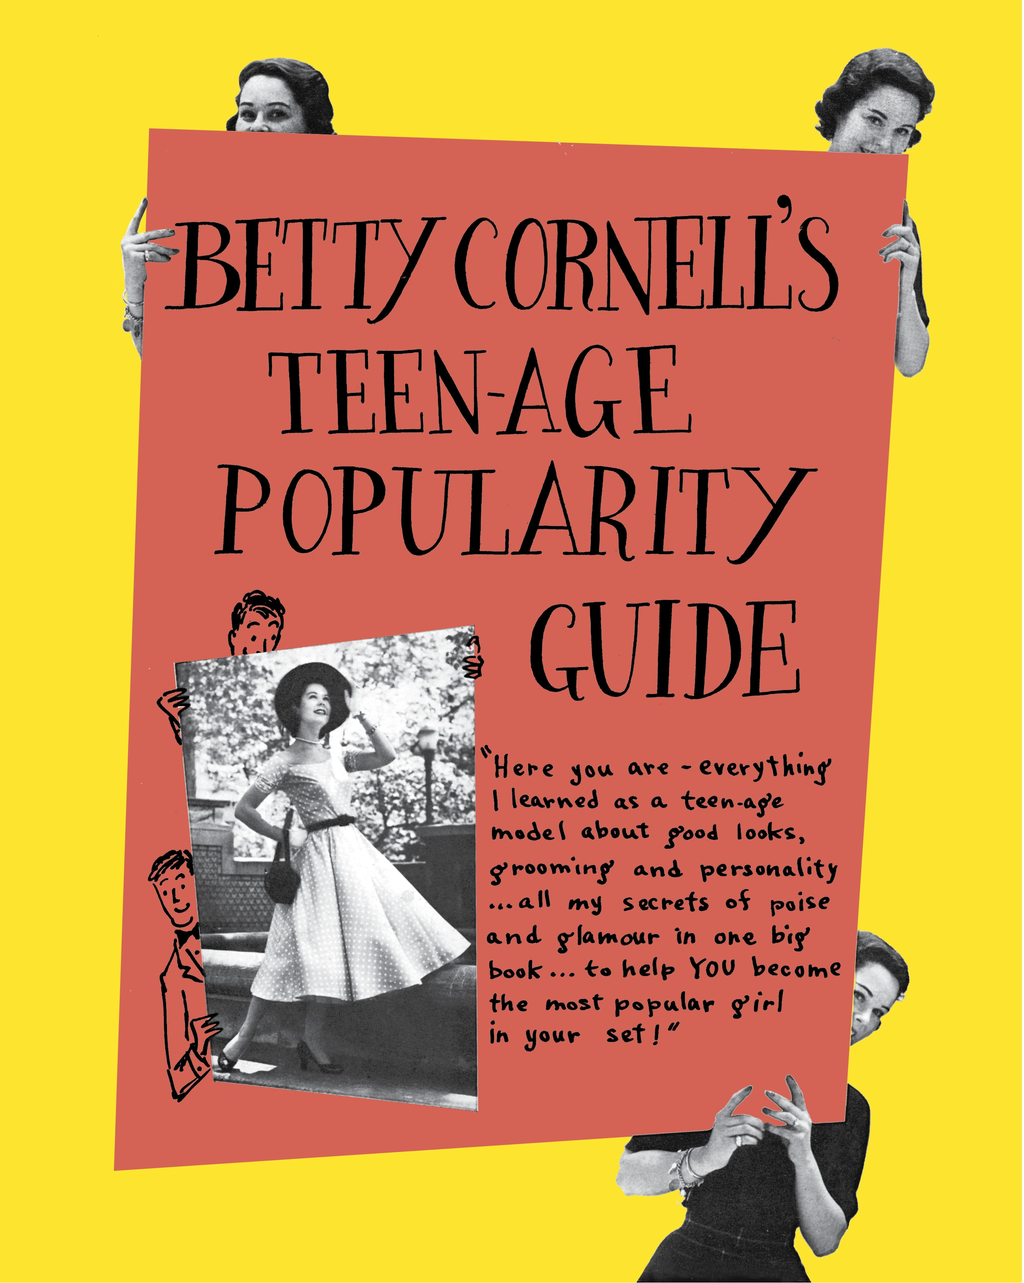 Betty Cornell Teen-Age Popularity Guide